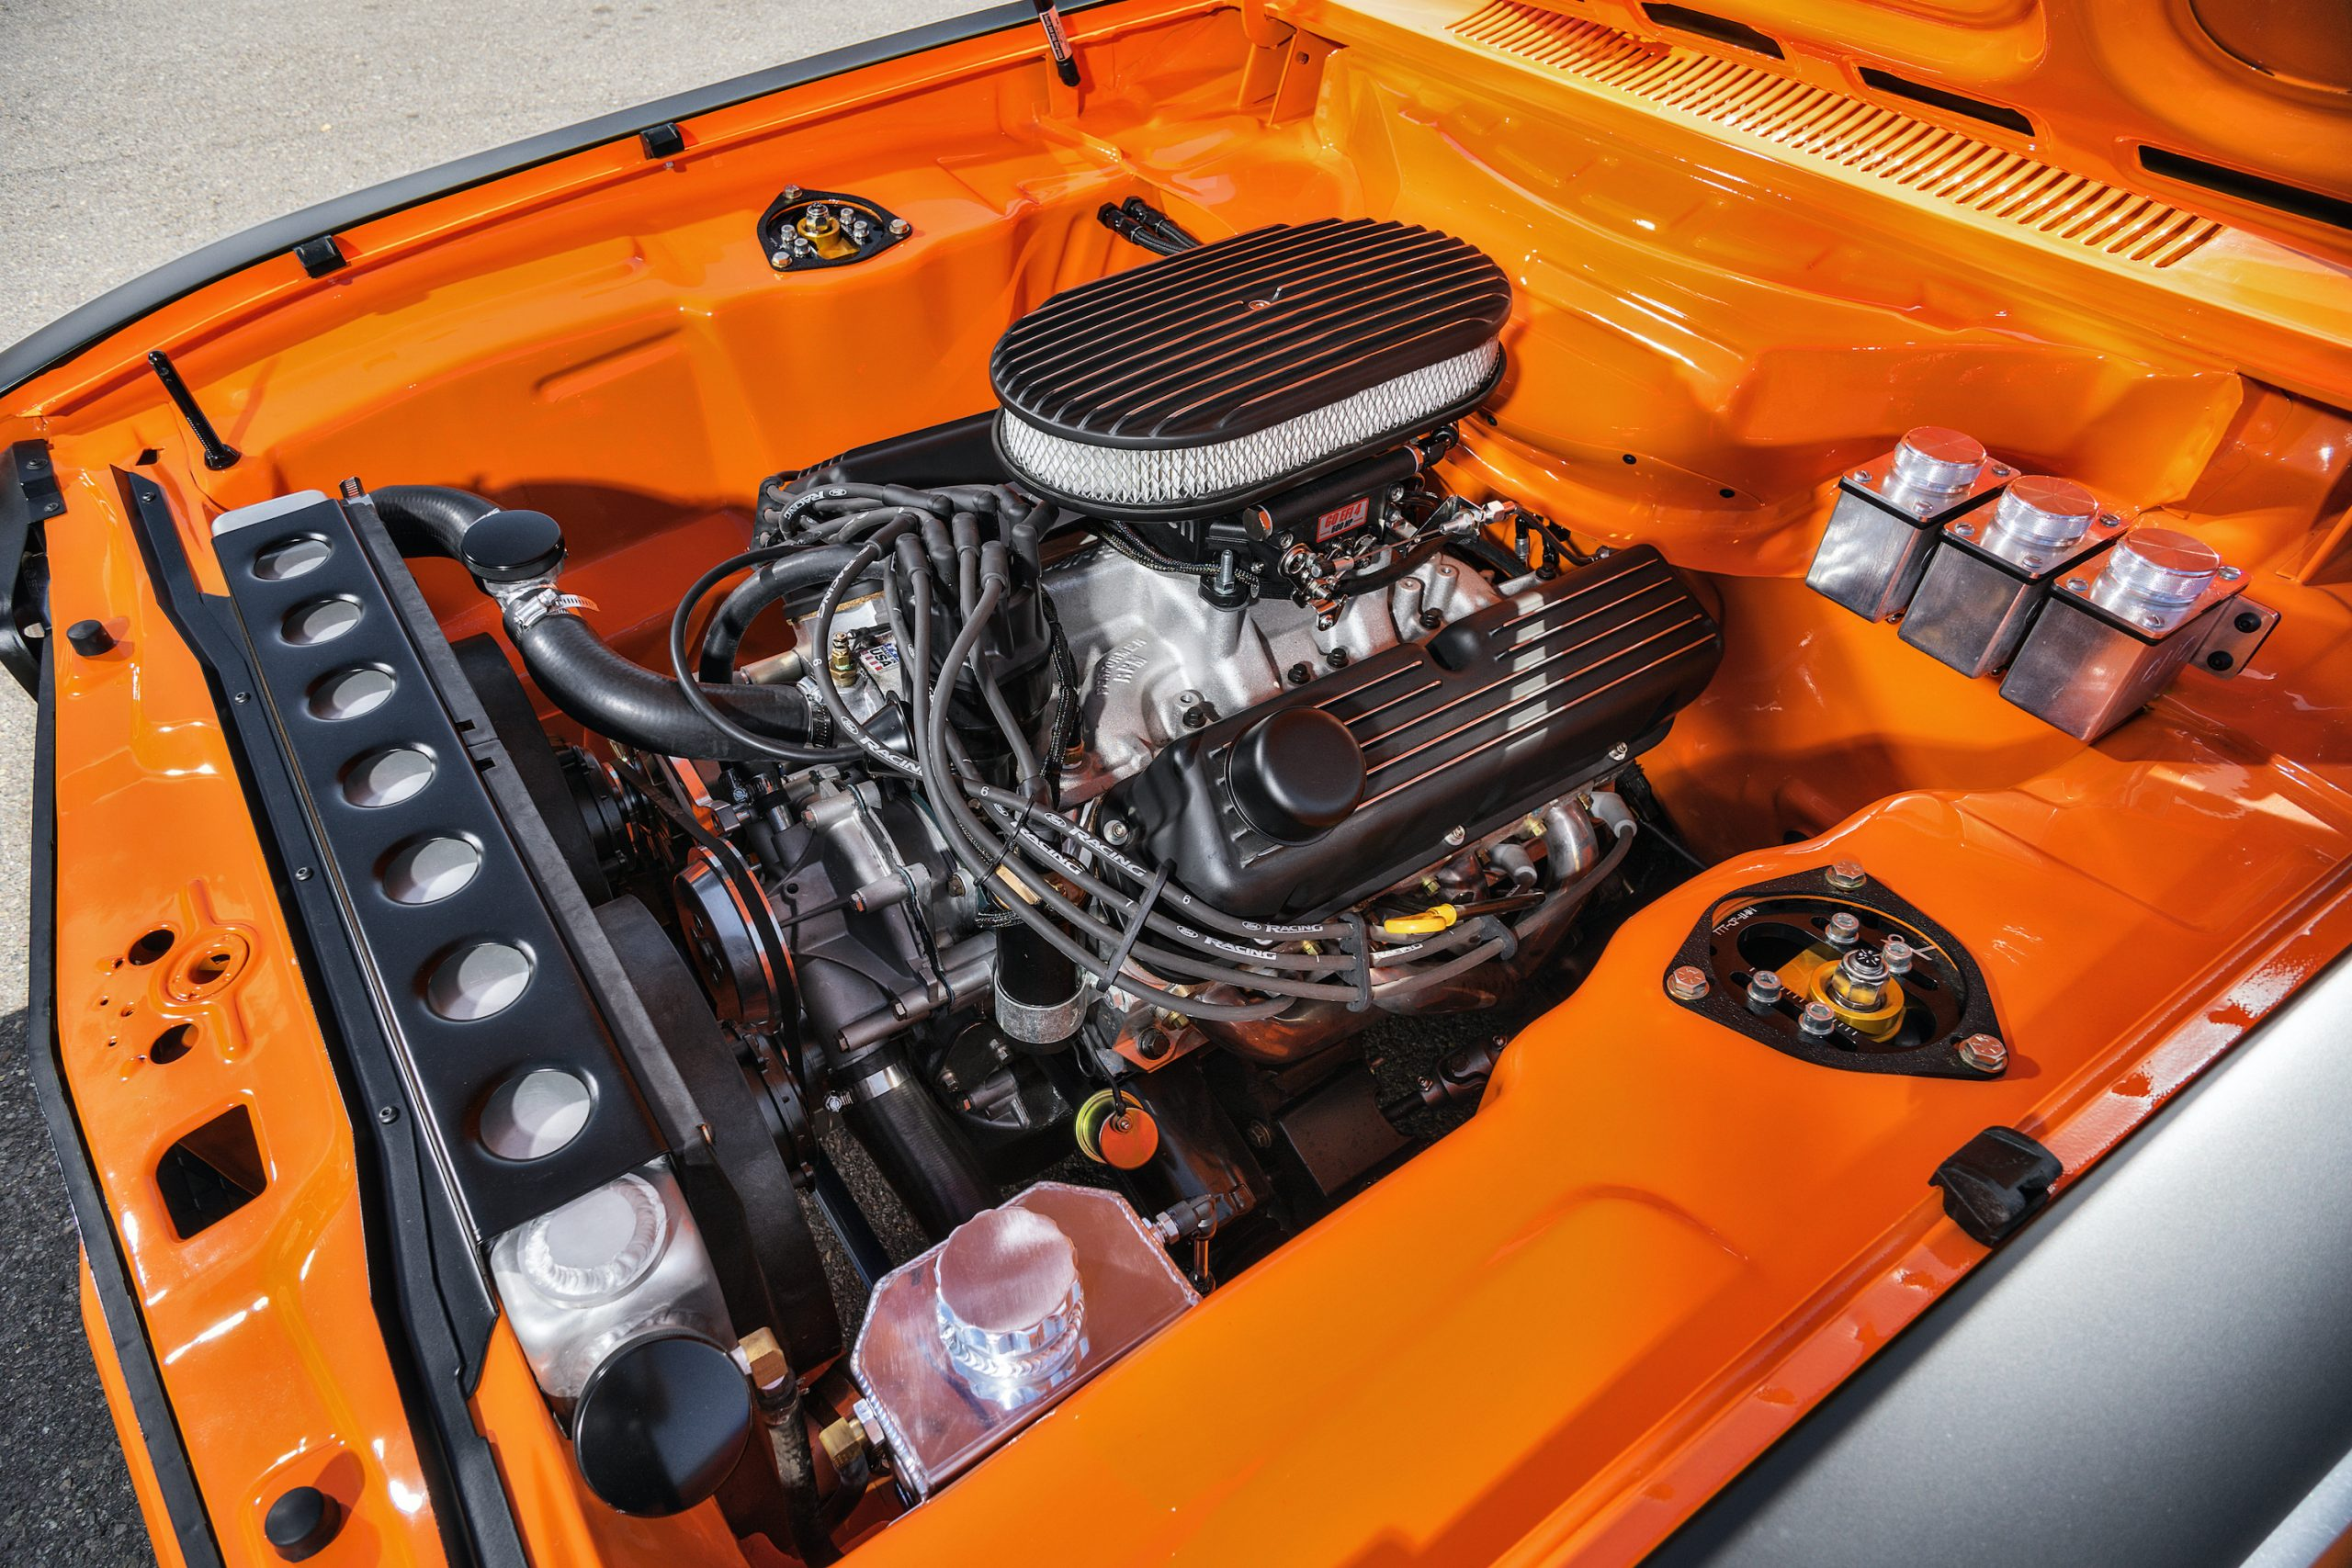 1974 Mk I Ford Capri restomod engine right